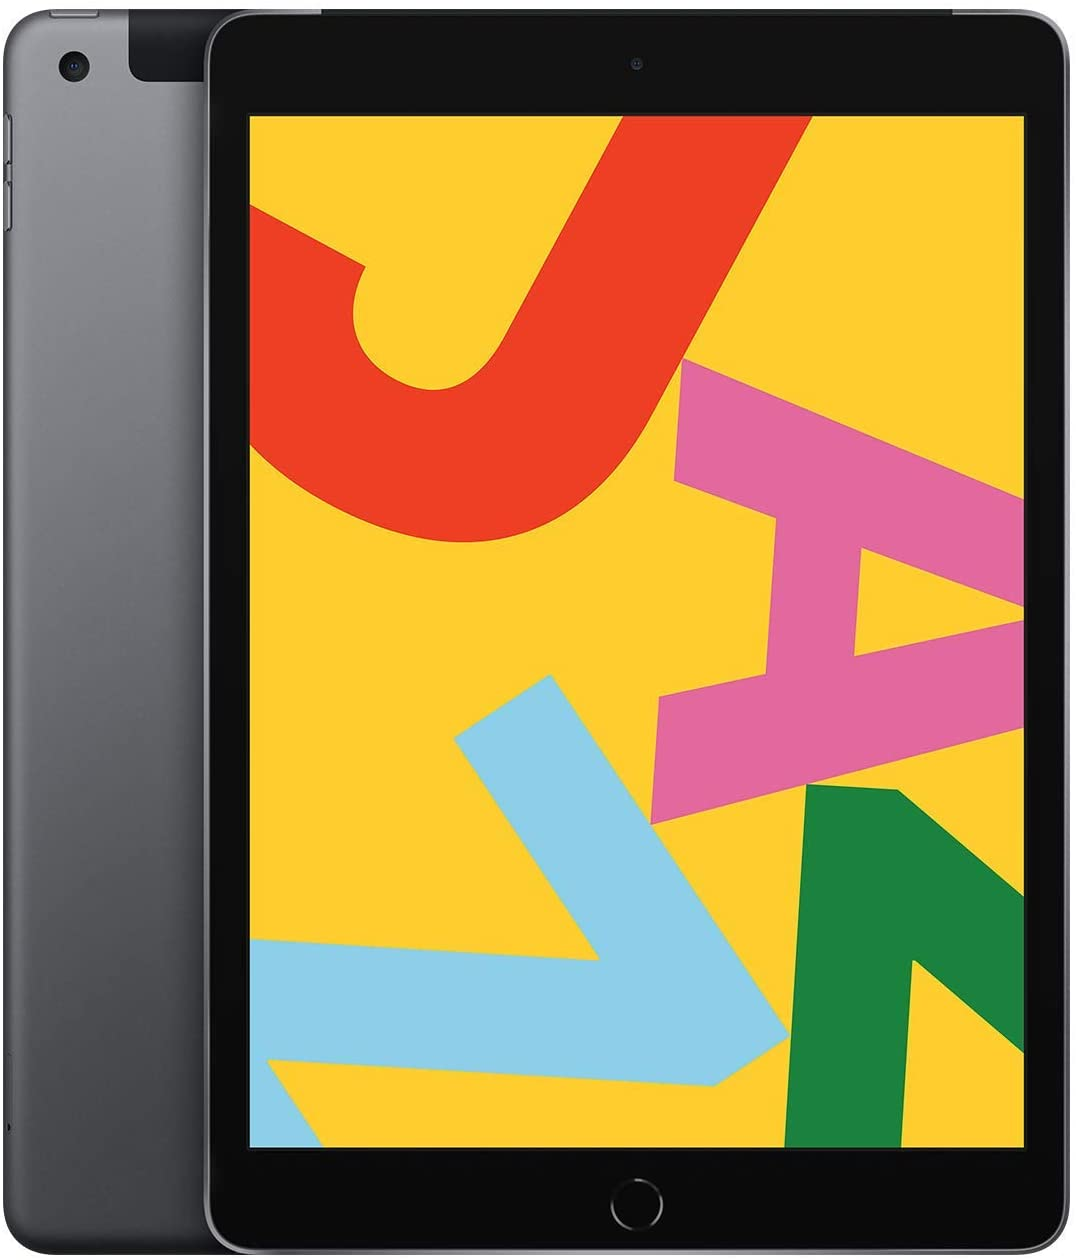 Apple iPad (10.2-Inch, Wi-Fi + Cellular, 32GB) - Space Gray (Latest Model) (Renewed)